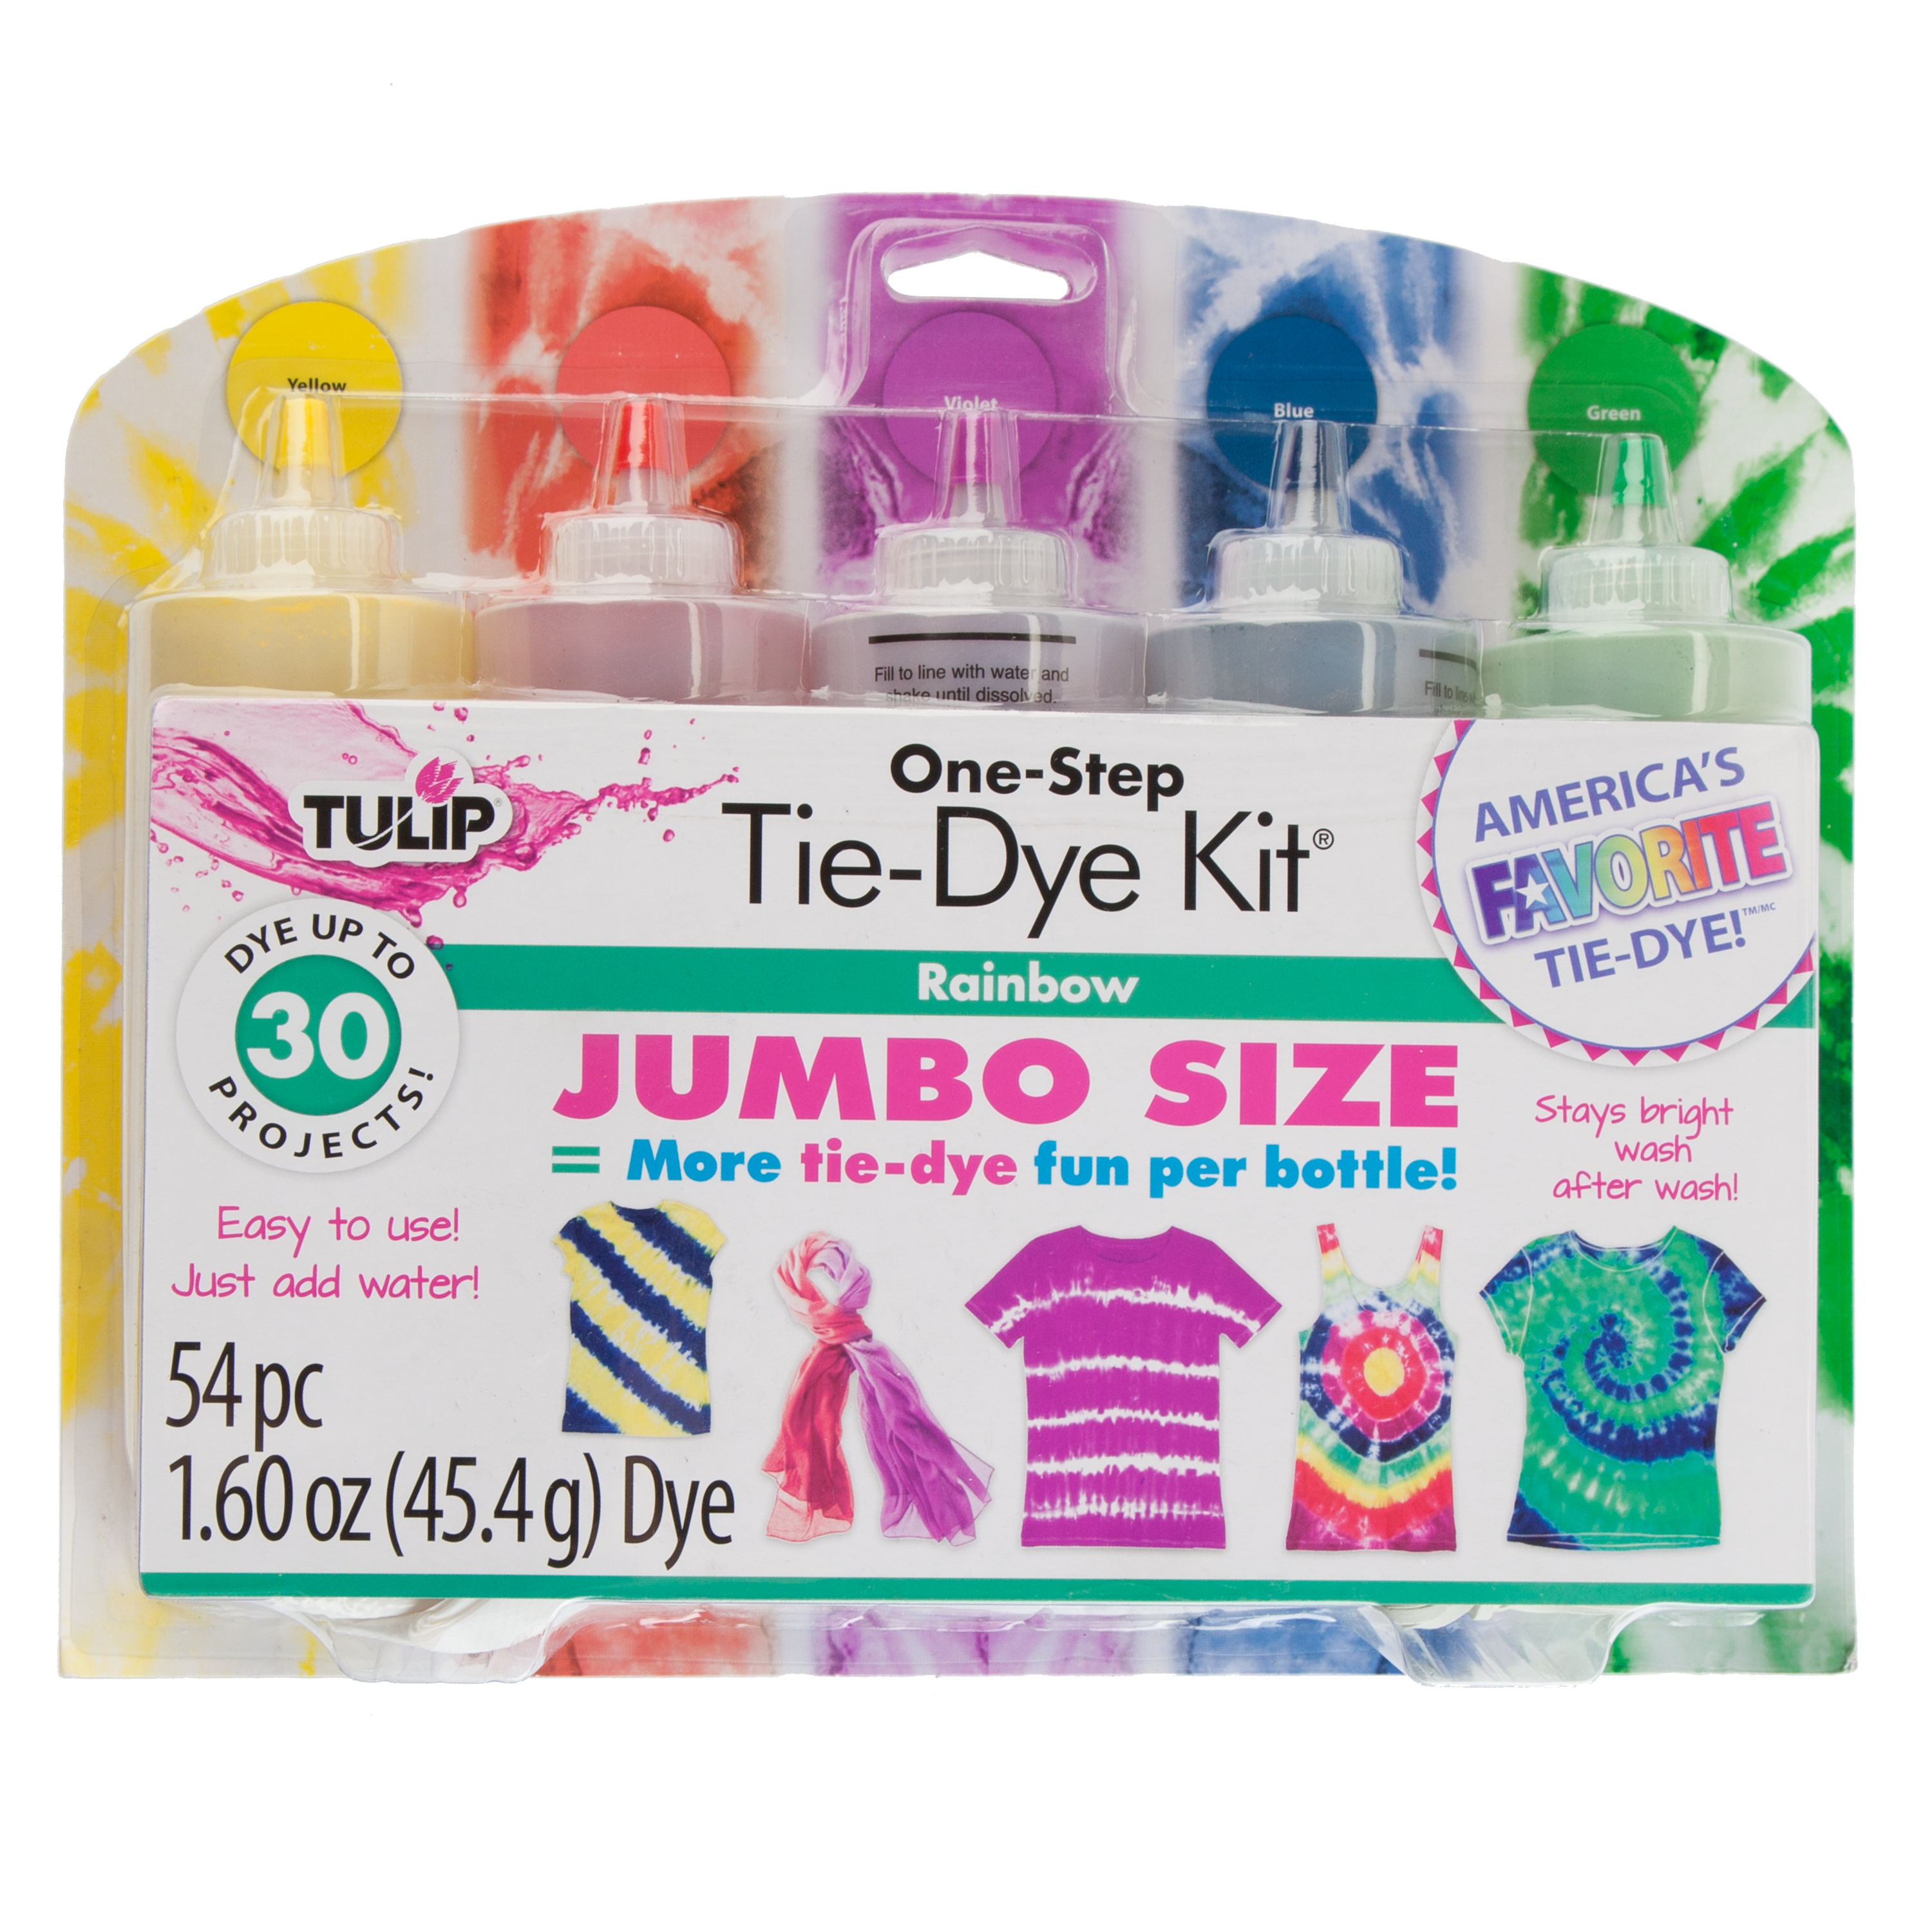 Tulip Rainbow Tie-Dye Kit, 5 Piece